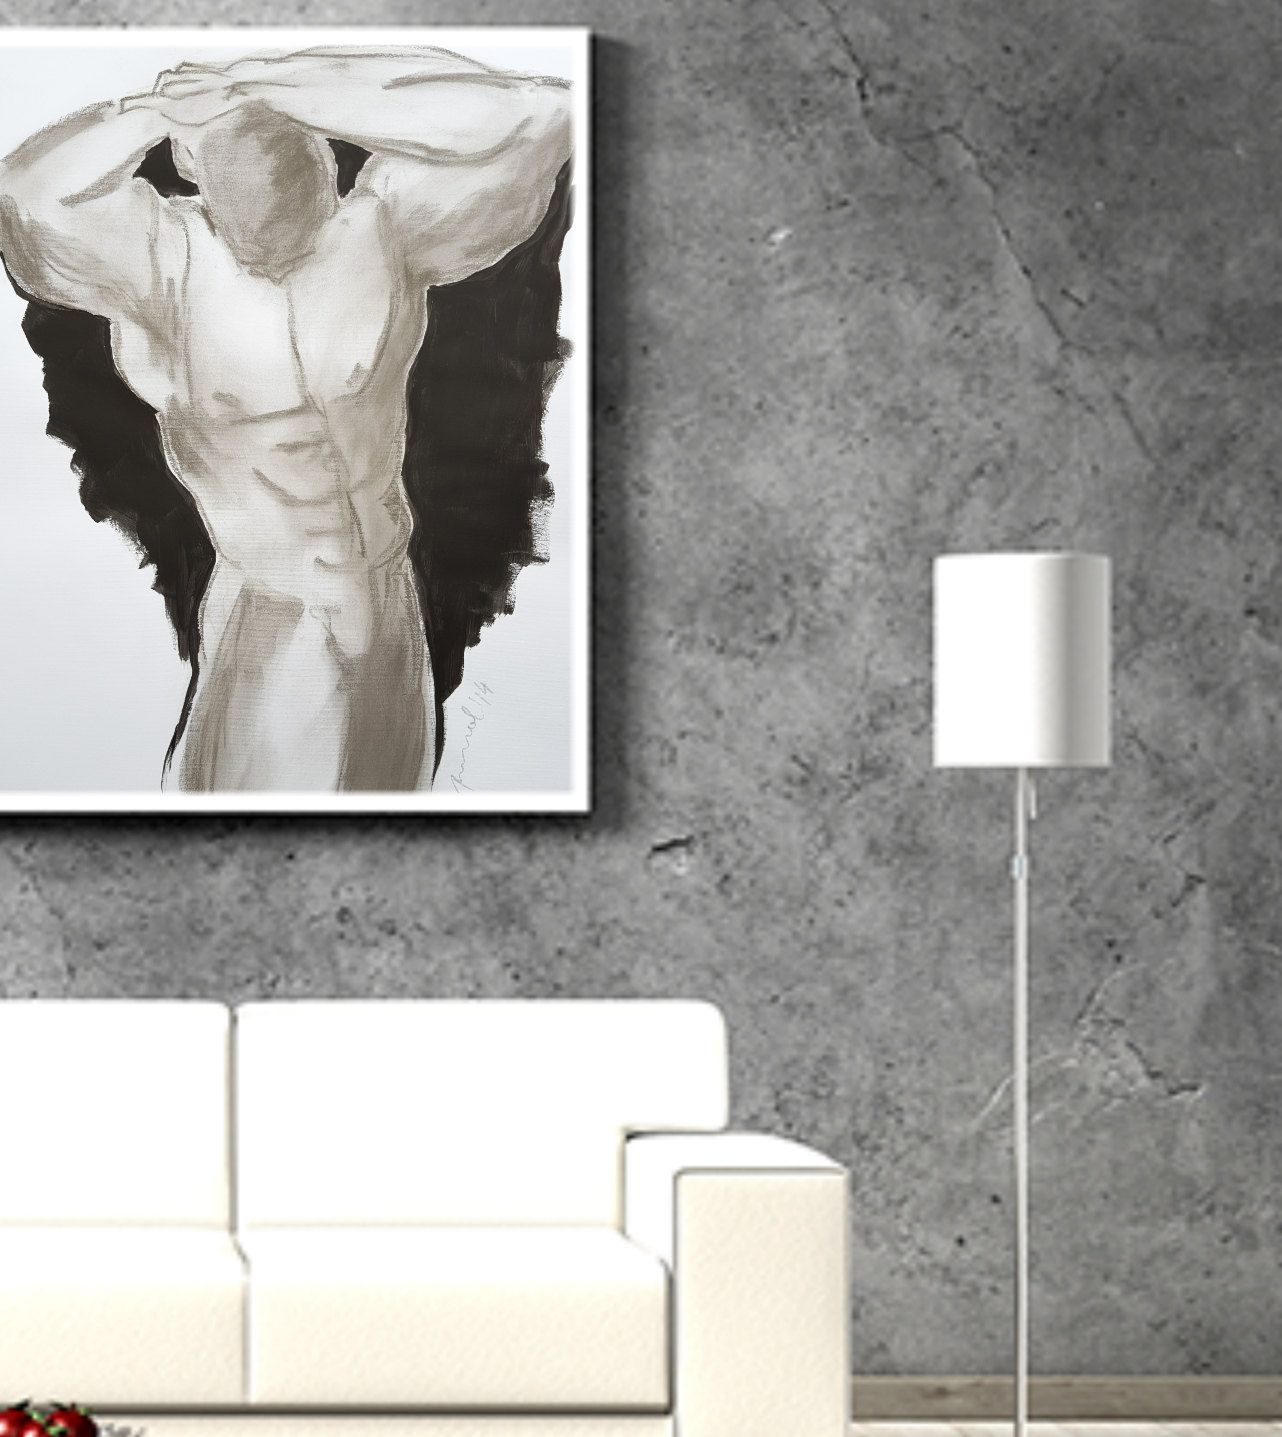 Acrylic paintinglarge paintinglarge modern wall artgiclée print